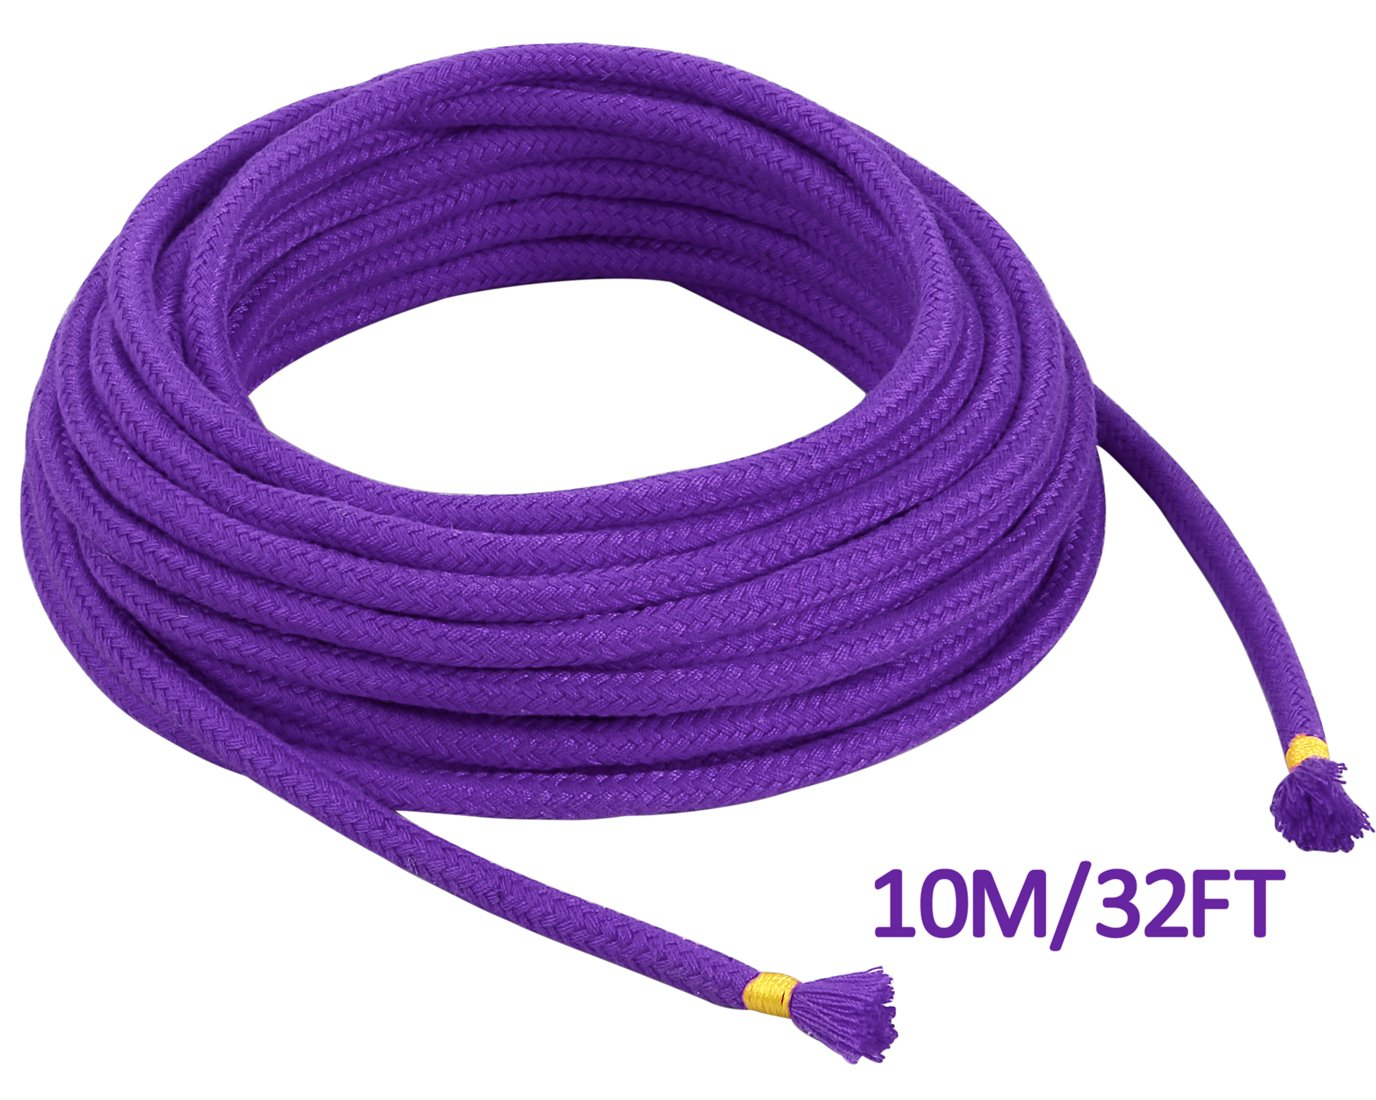 BONTIME All-Purpose Soft Cotton Rope - 32 Feet Length,1/3-Inch Diameter (Purple,Pack of 3) by BONTIME (Image #2)